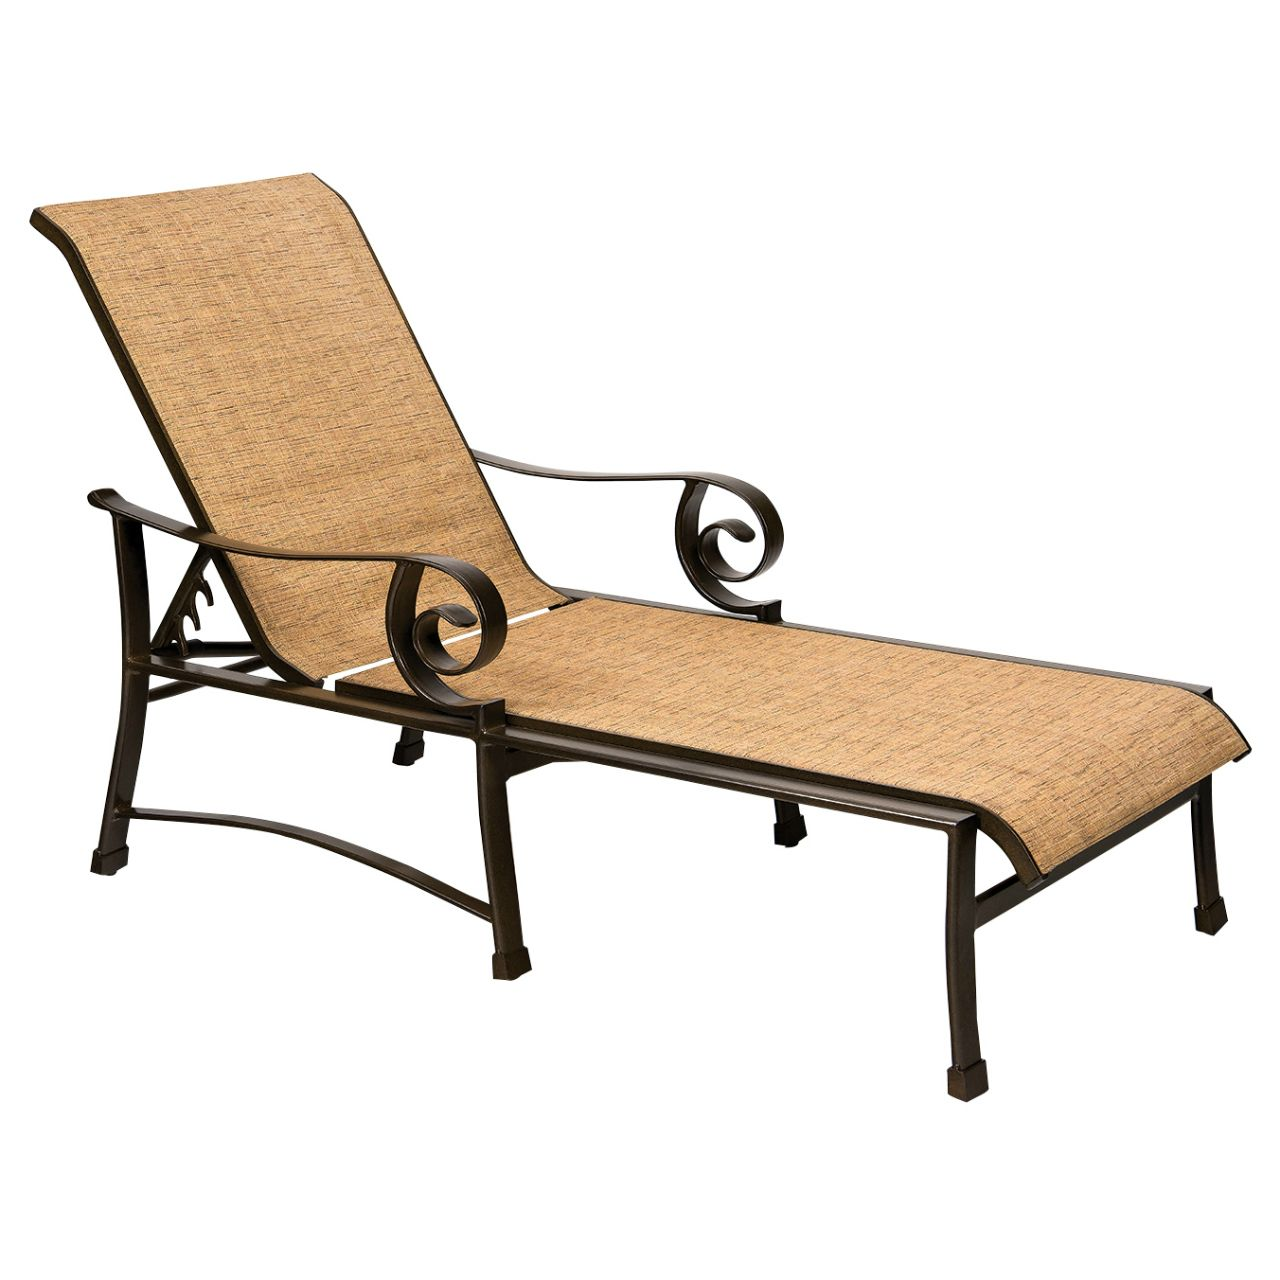 Patio Furniture Abq Nm: Santa Monica Chaise Lounge